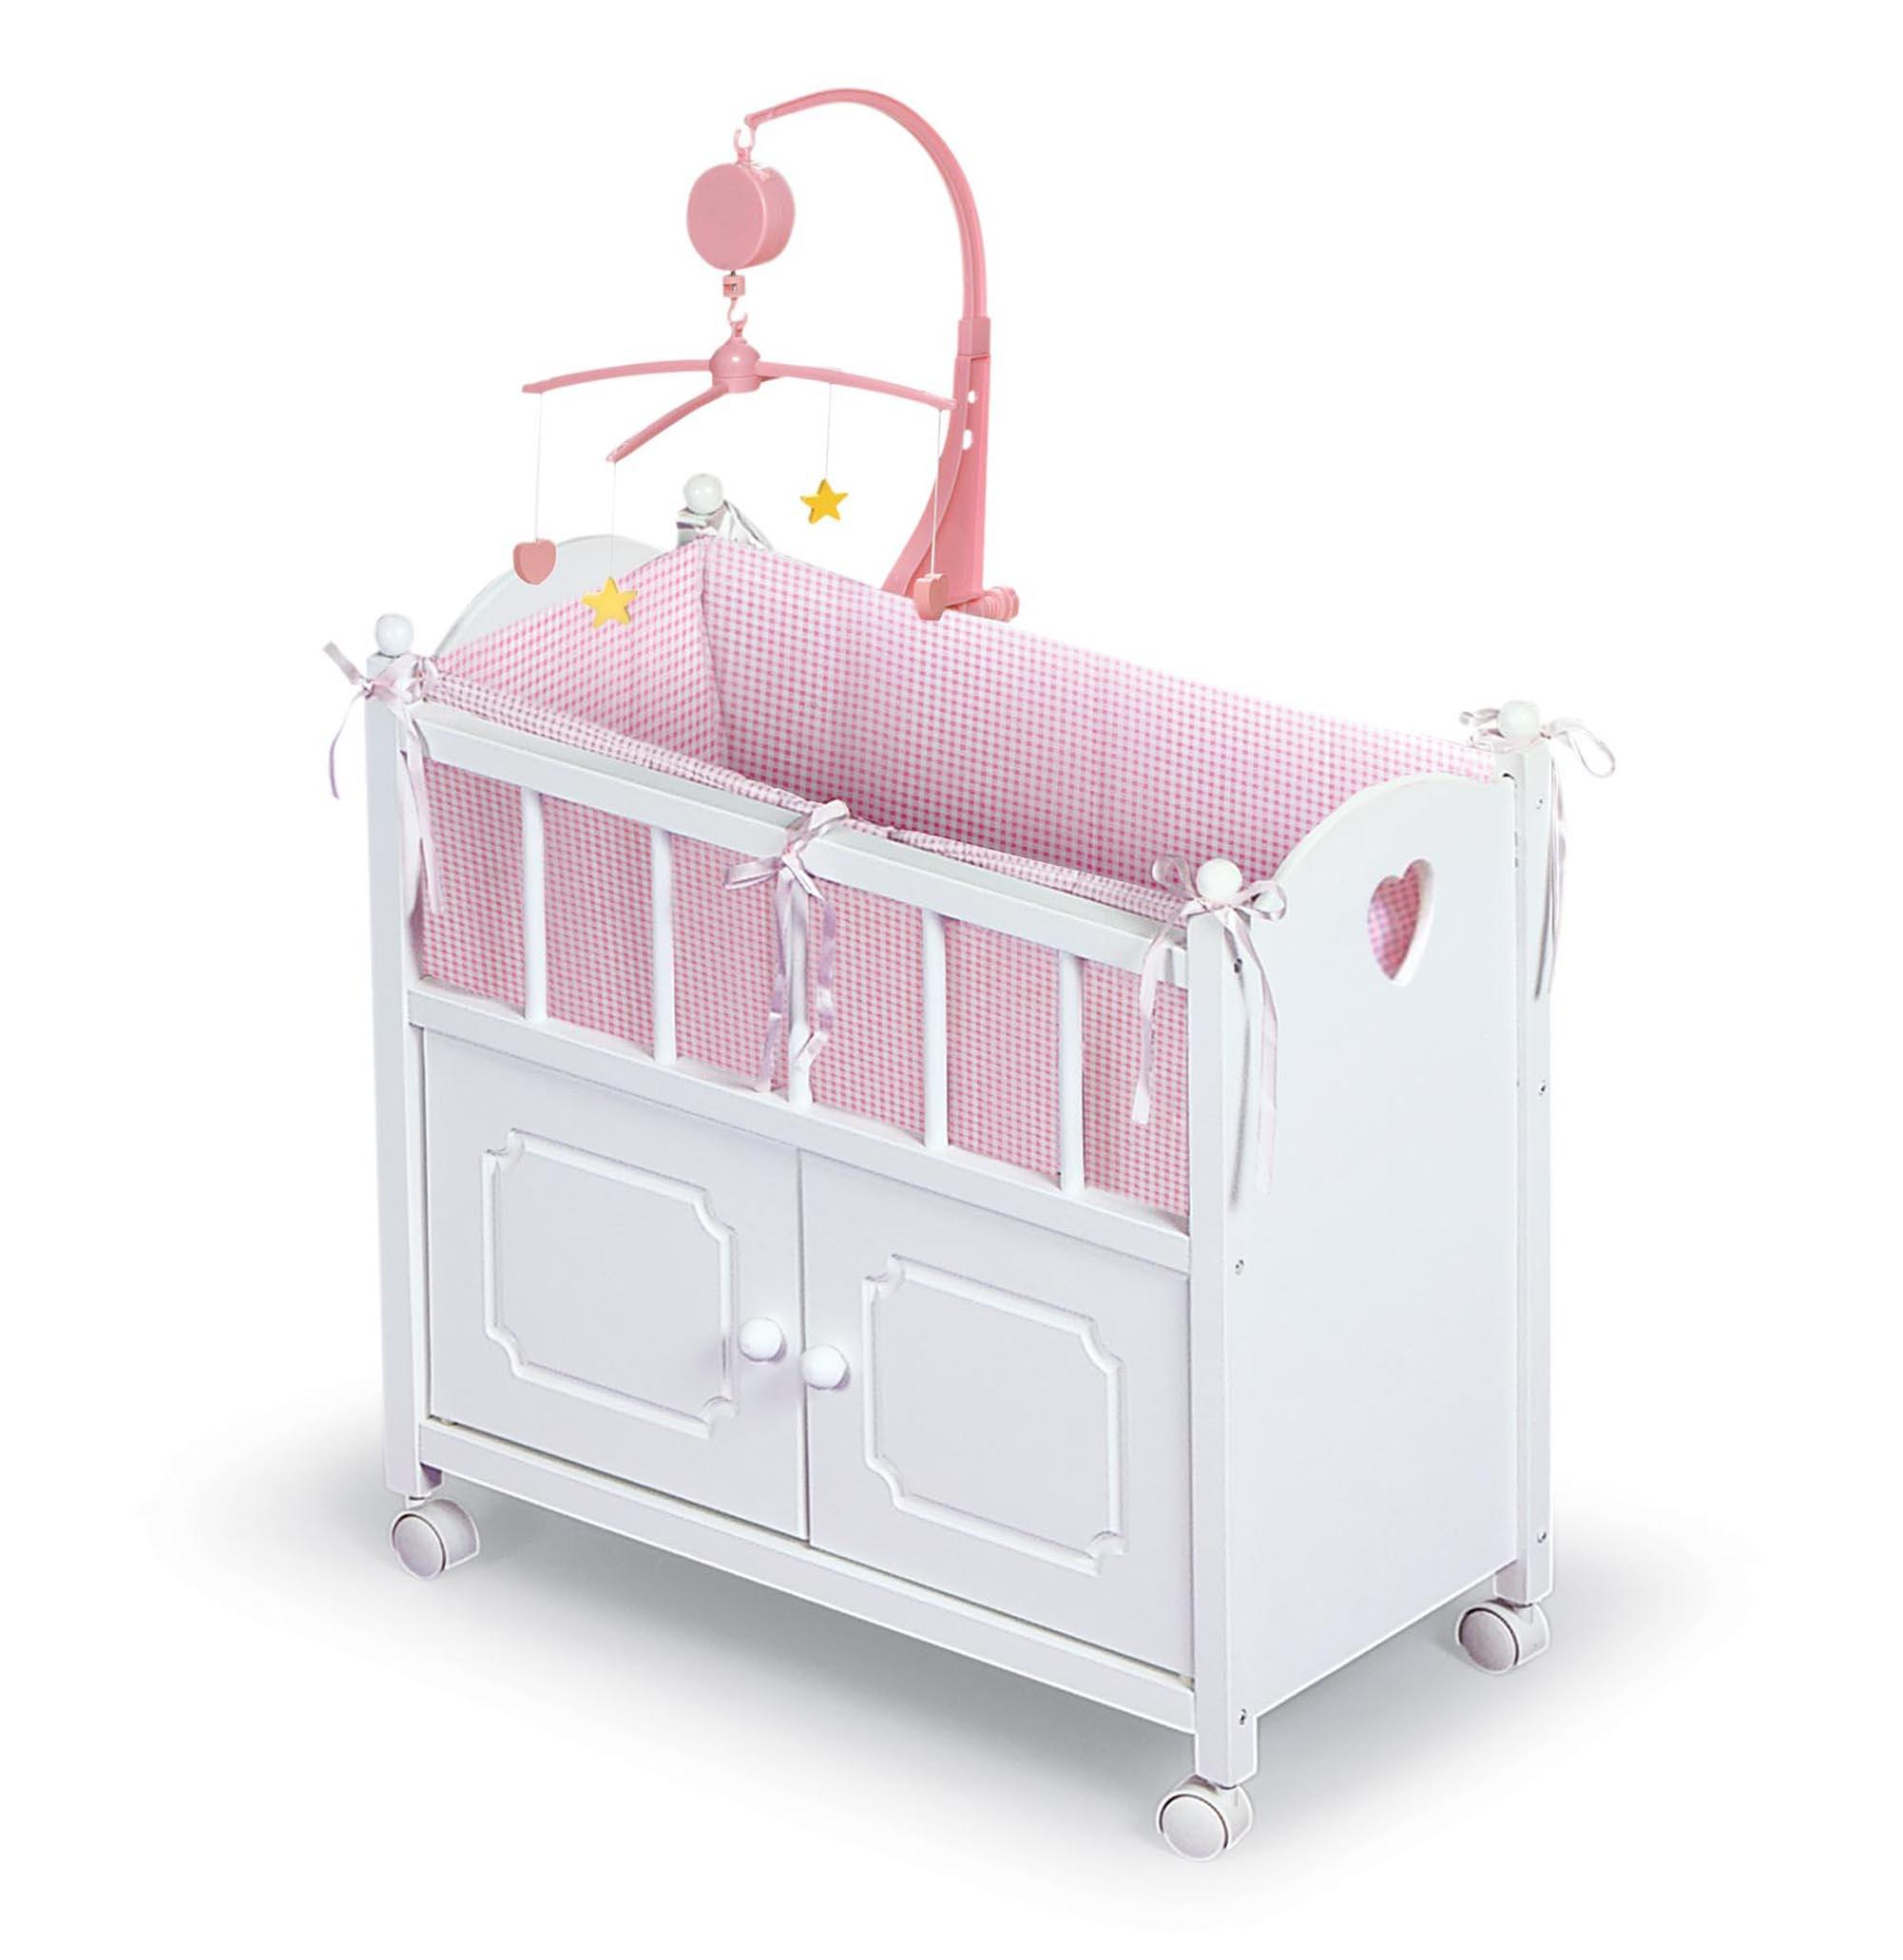 Best Crib Toys For Babies : Badger basket doll crib with cabinet mobile and bedding